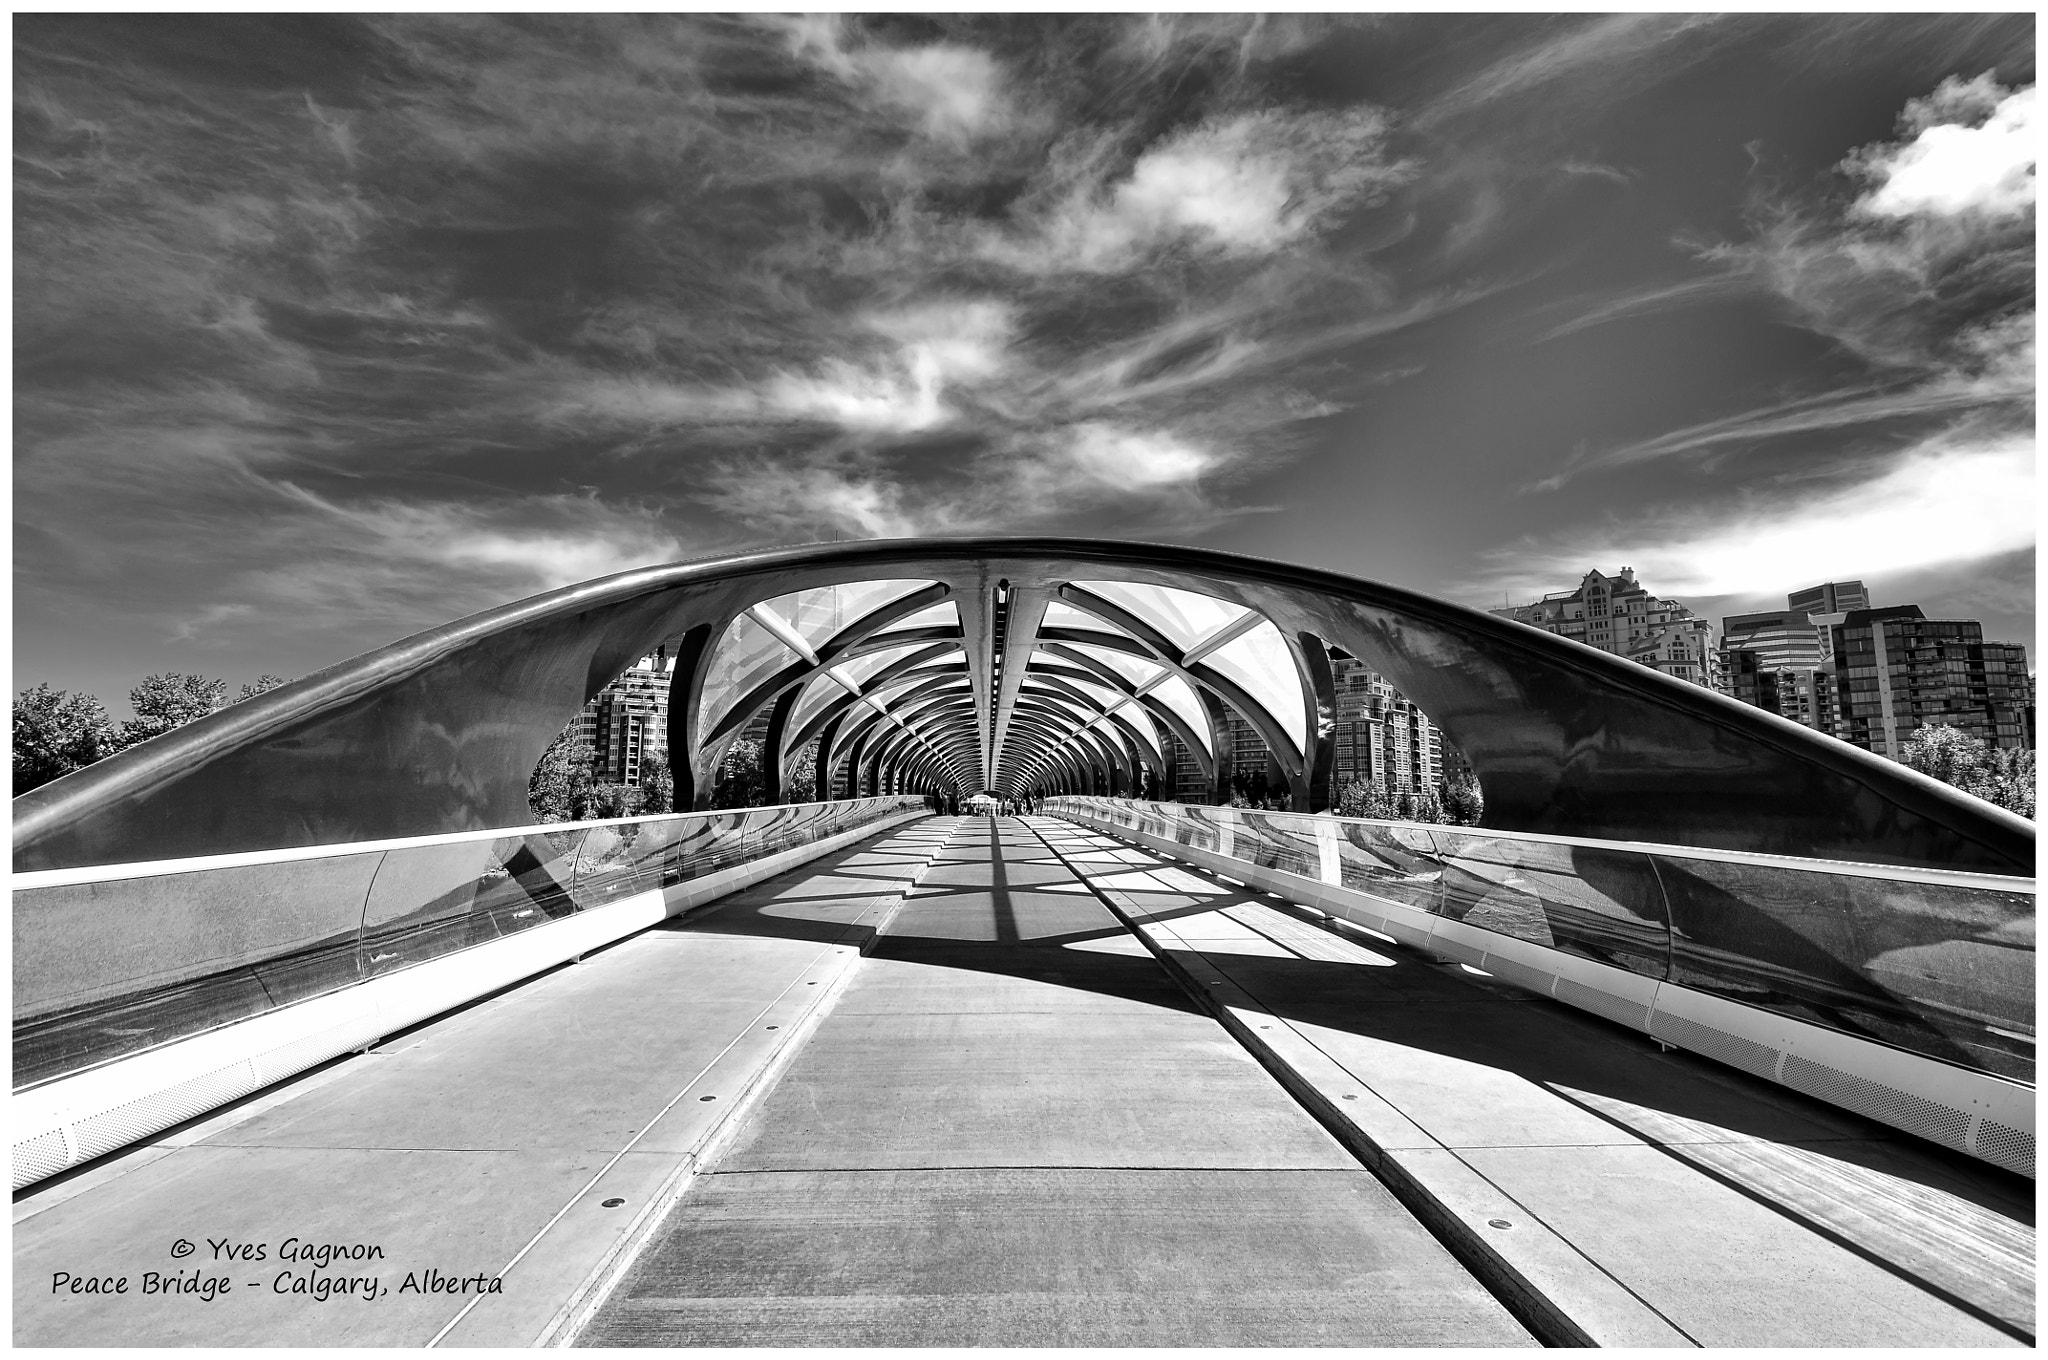 Photograph Peace Bridge, Calgary, Alberta, Canada by Yves Gagnon on 500px